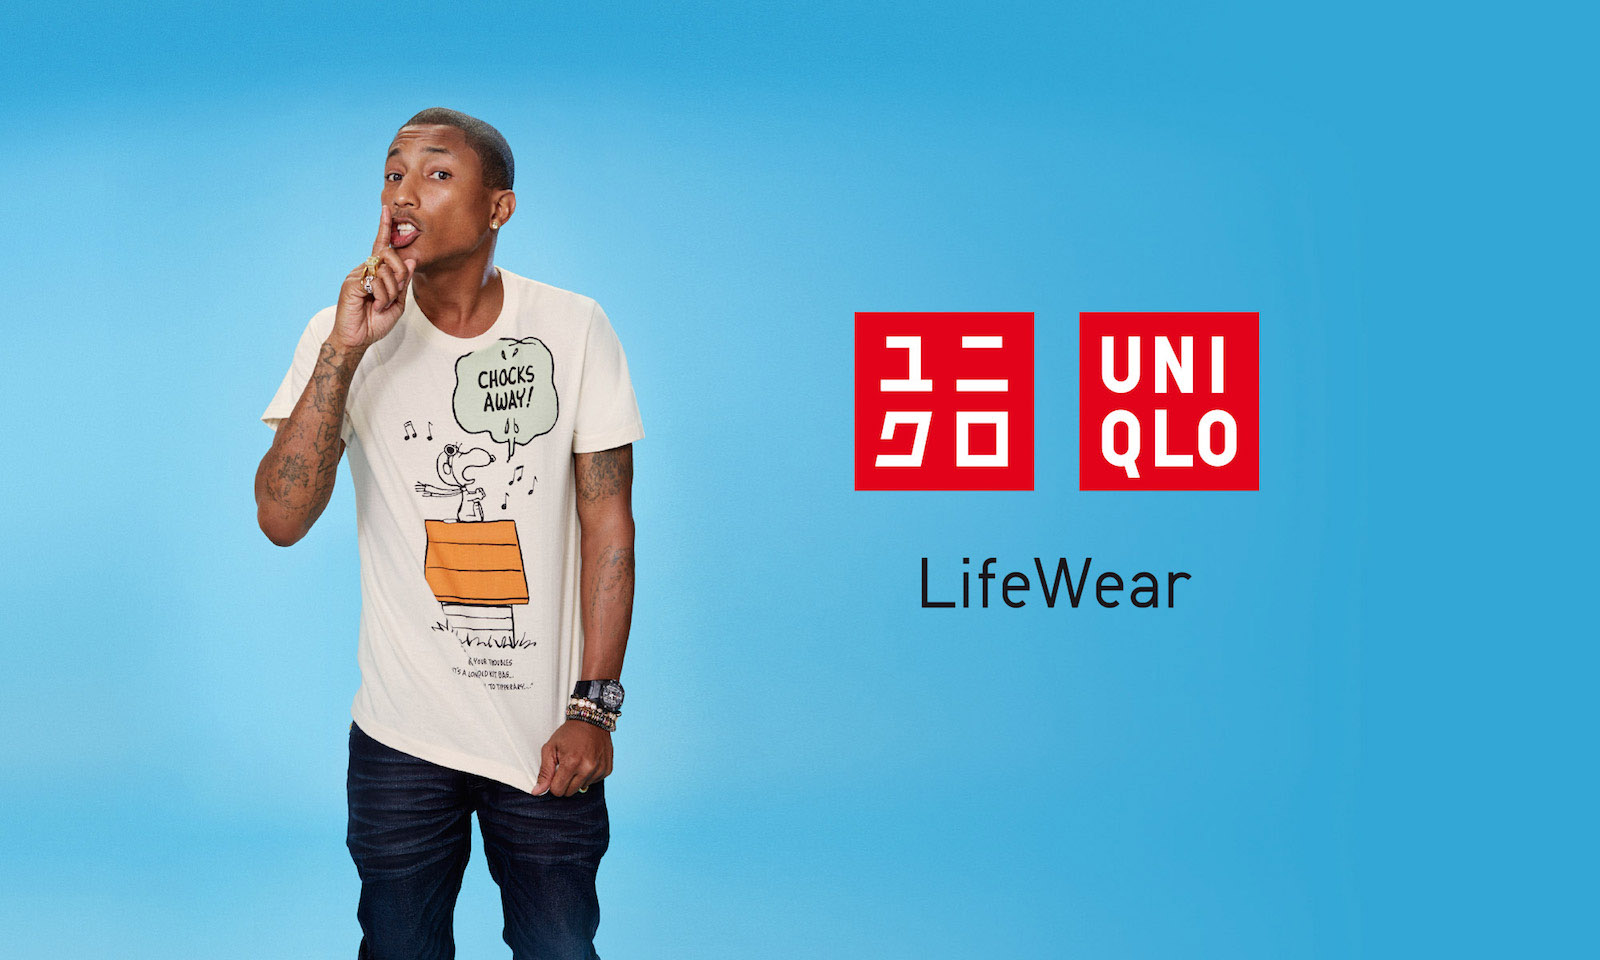 Uniqlo's success